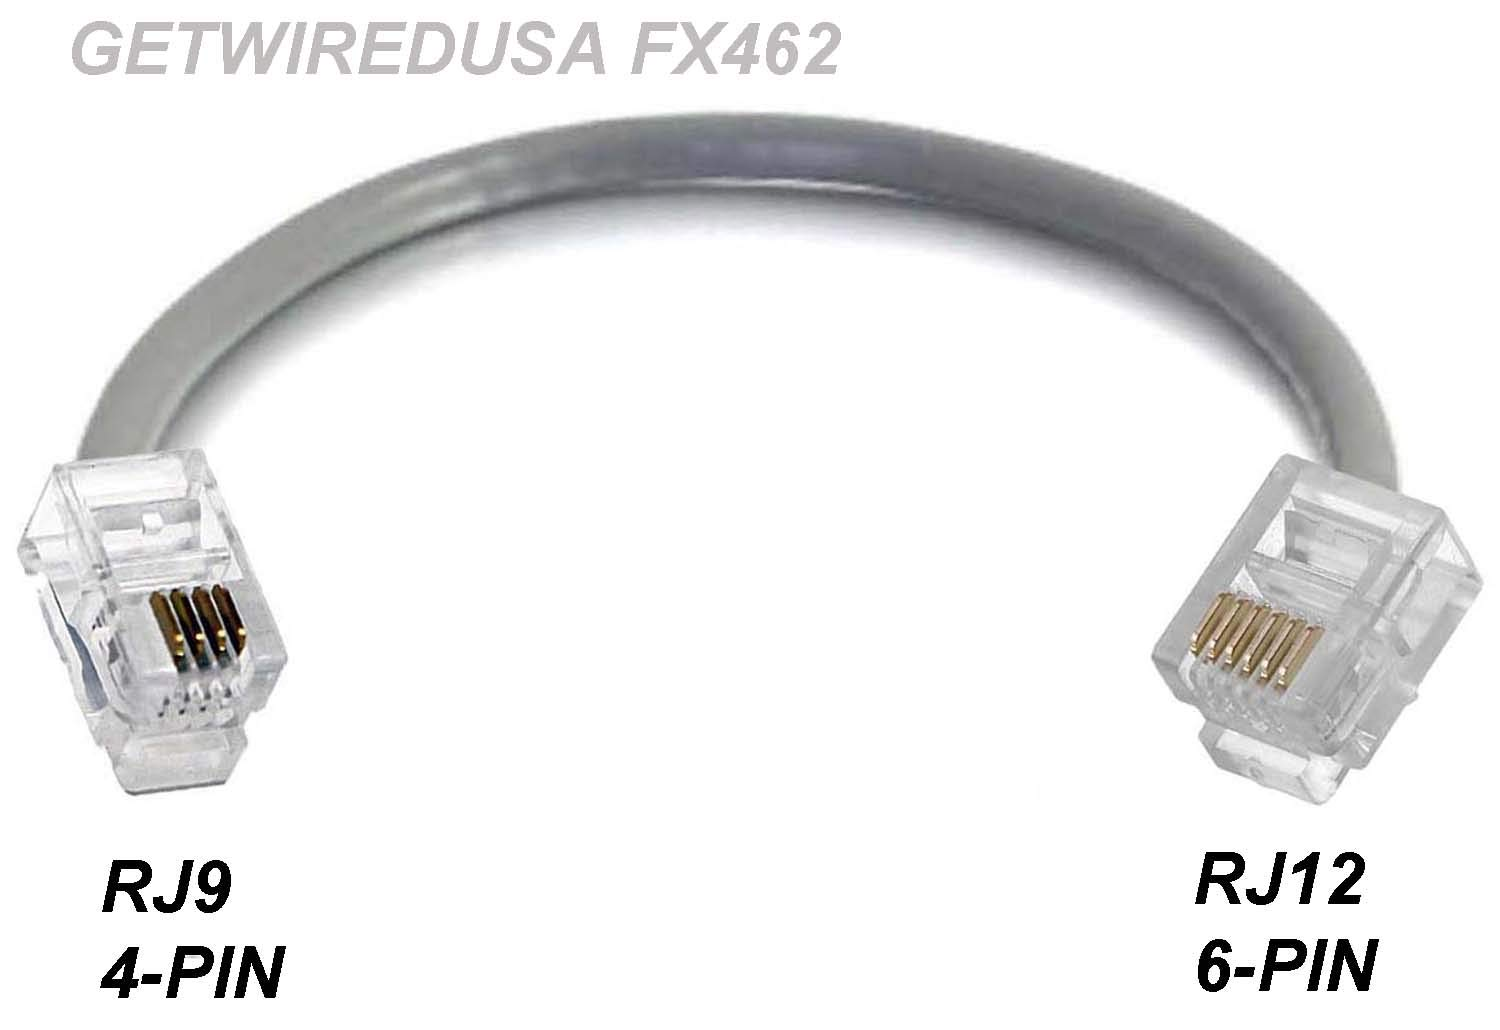 RJ9 RJ10 RJ22 4P4C 4-PIN to RJ12 RJ11 6P6C 6-PIN NETWORK PHONE HEADSET JACK MALE CABLE ADAPTER by getwiredusa